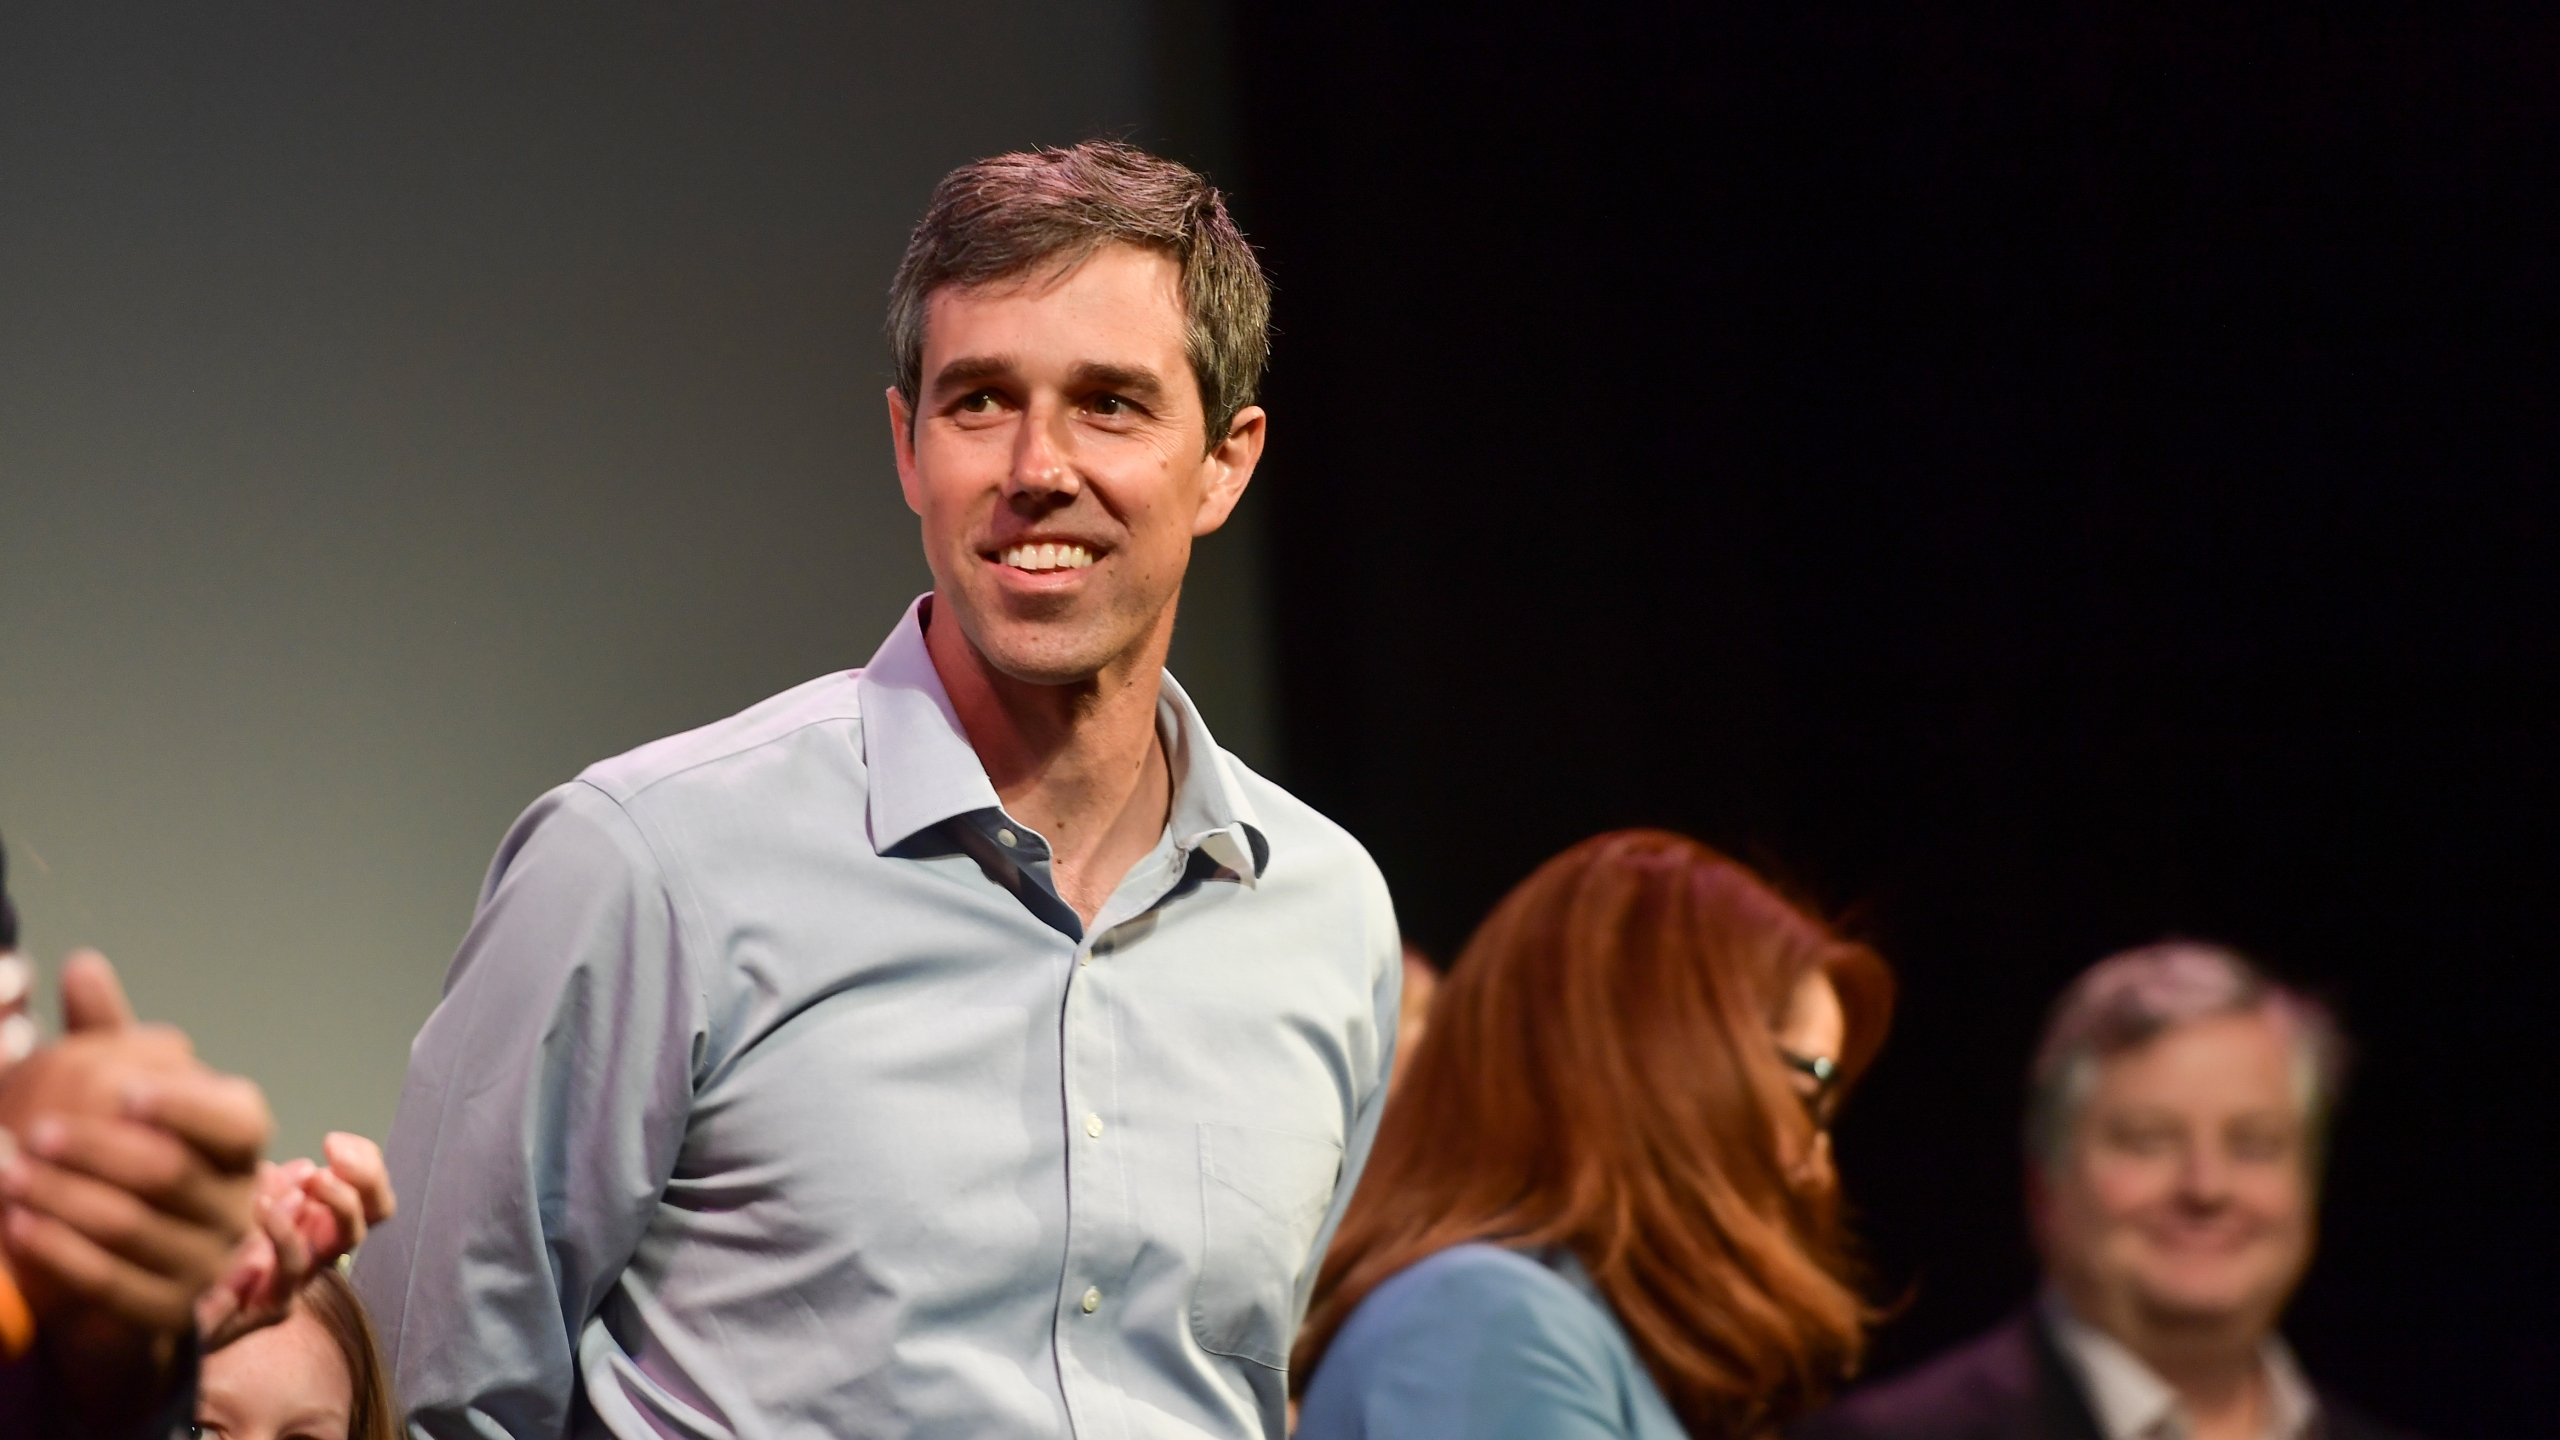 Beto O'Rourke attends the 'Running with Beto' Premiere 2019 SXSW Conference and Festivals at Paramount Theatre on March 09, 2019 in Austin, Texas. (Credit: Matt Winkelmeyer/Getty Images for SXSW)